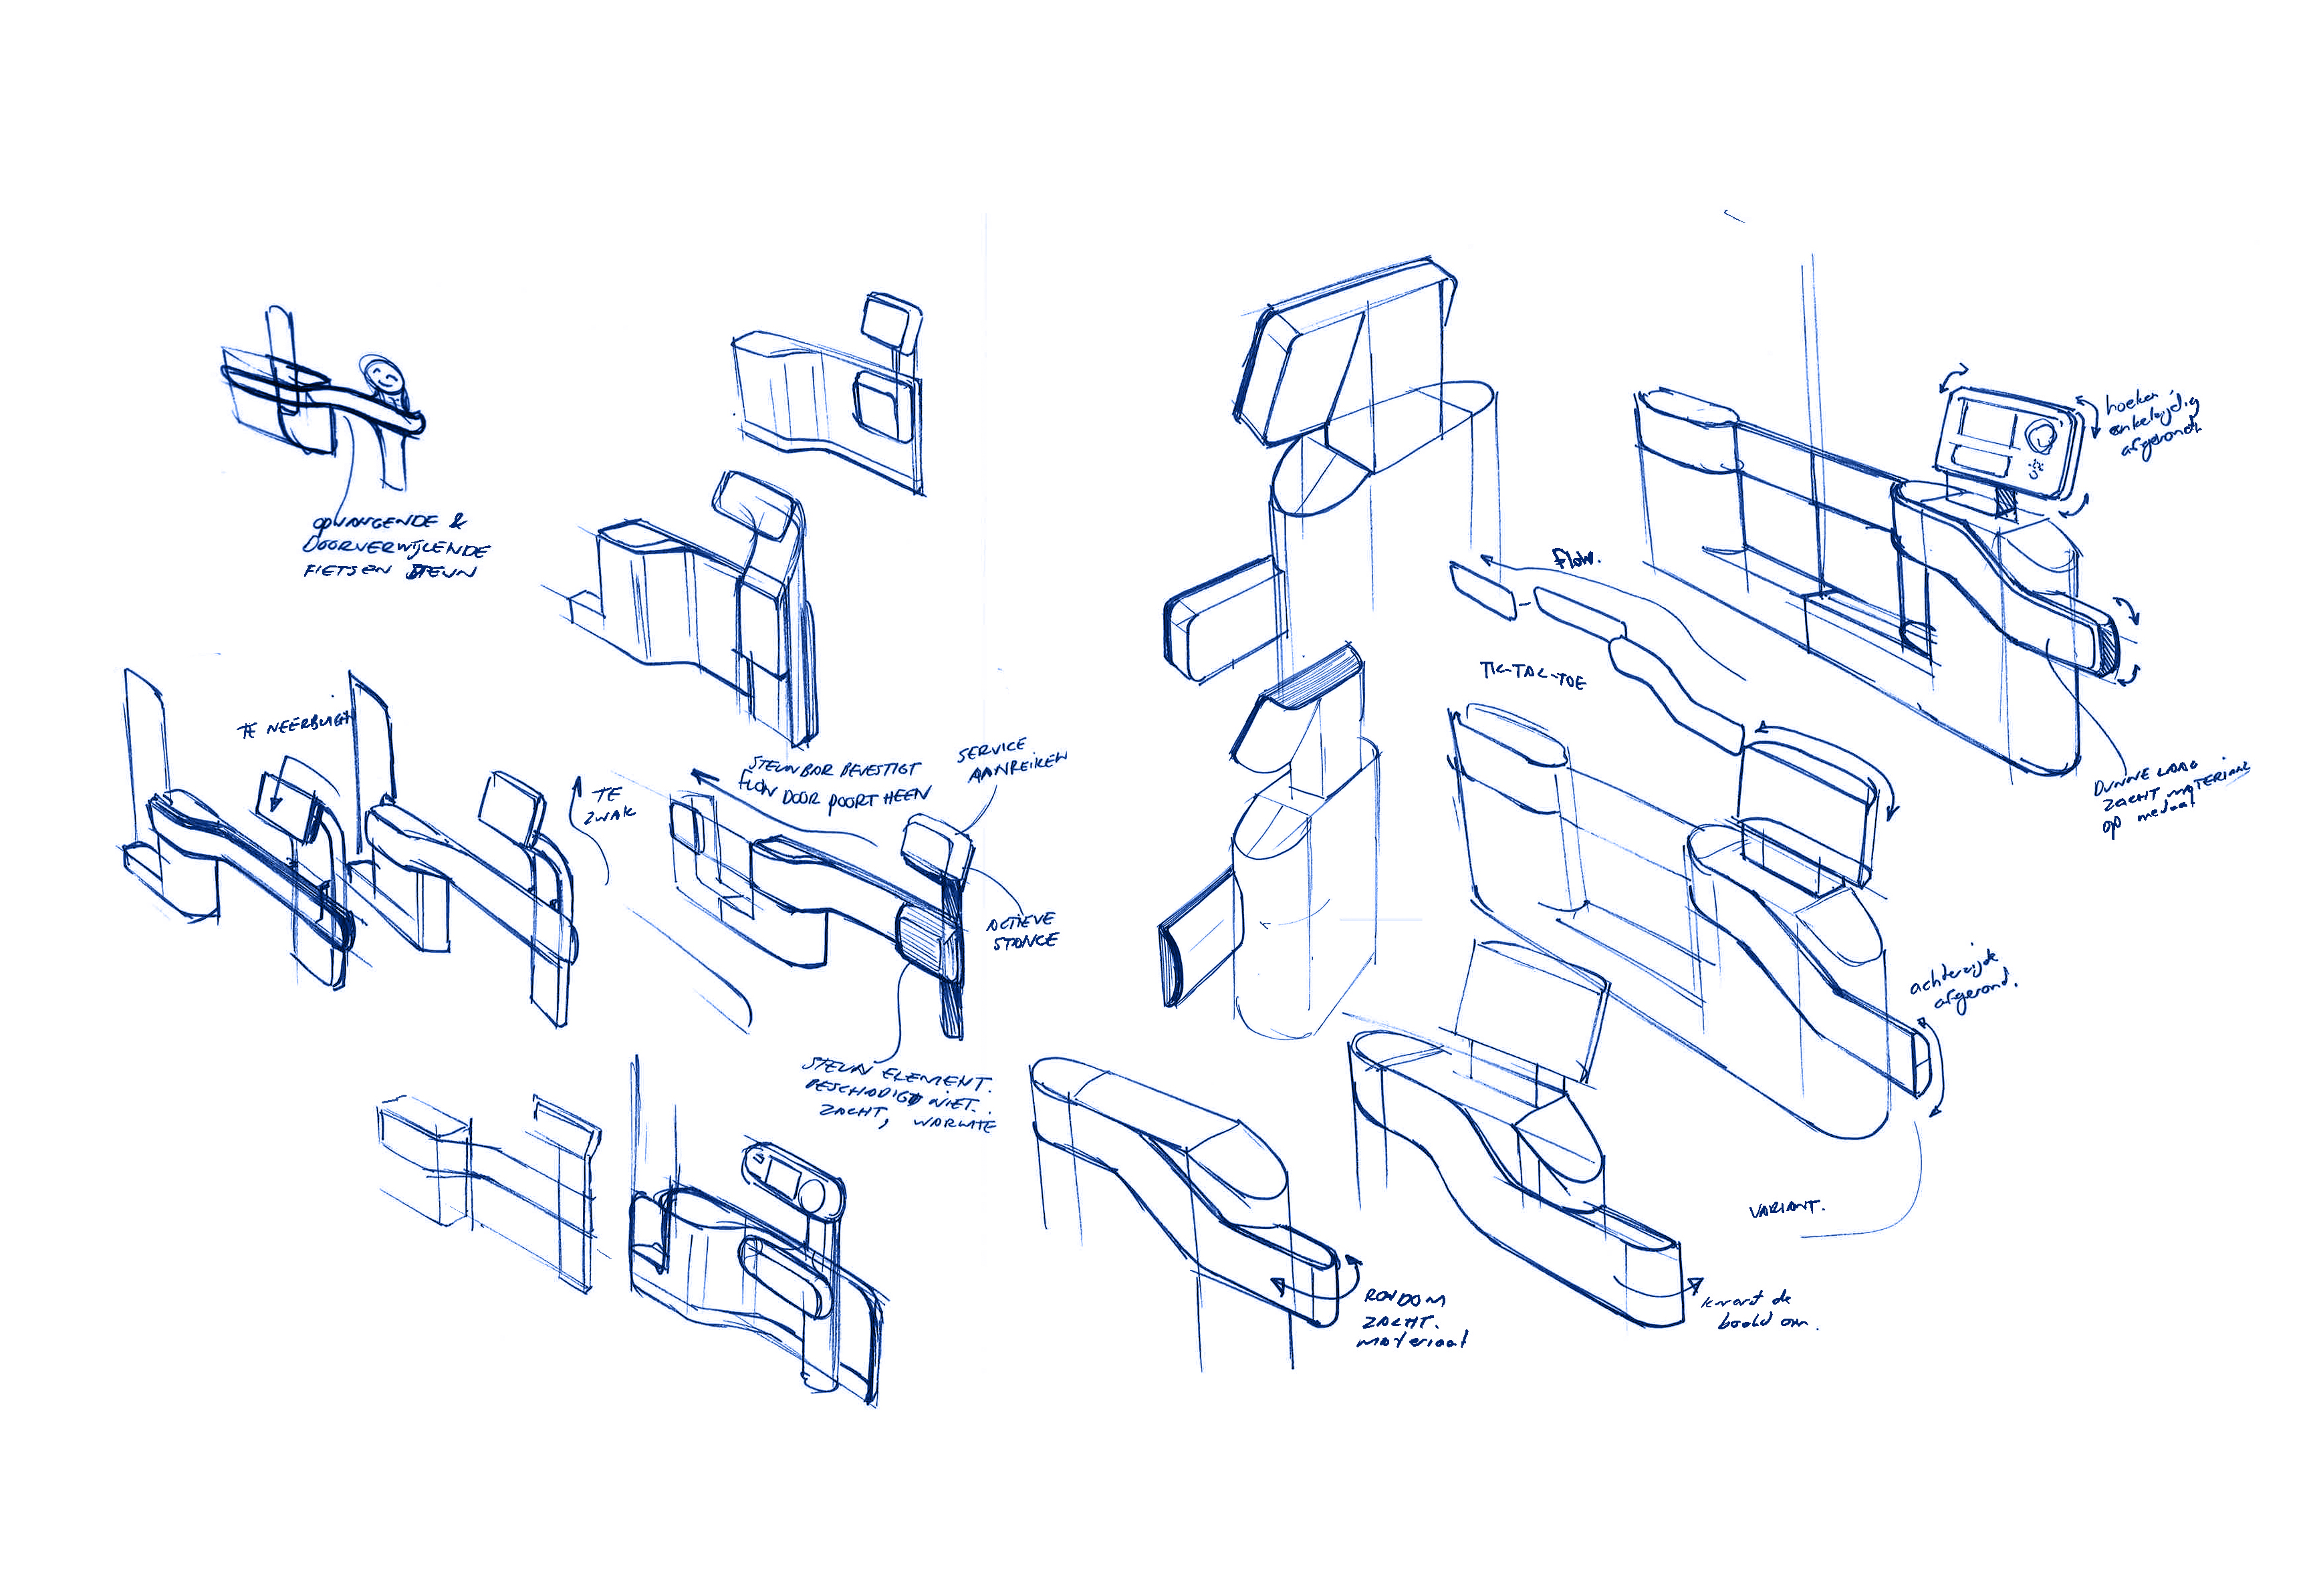 Self service bicycle gate sketches